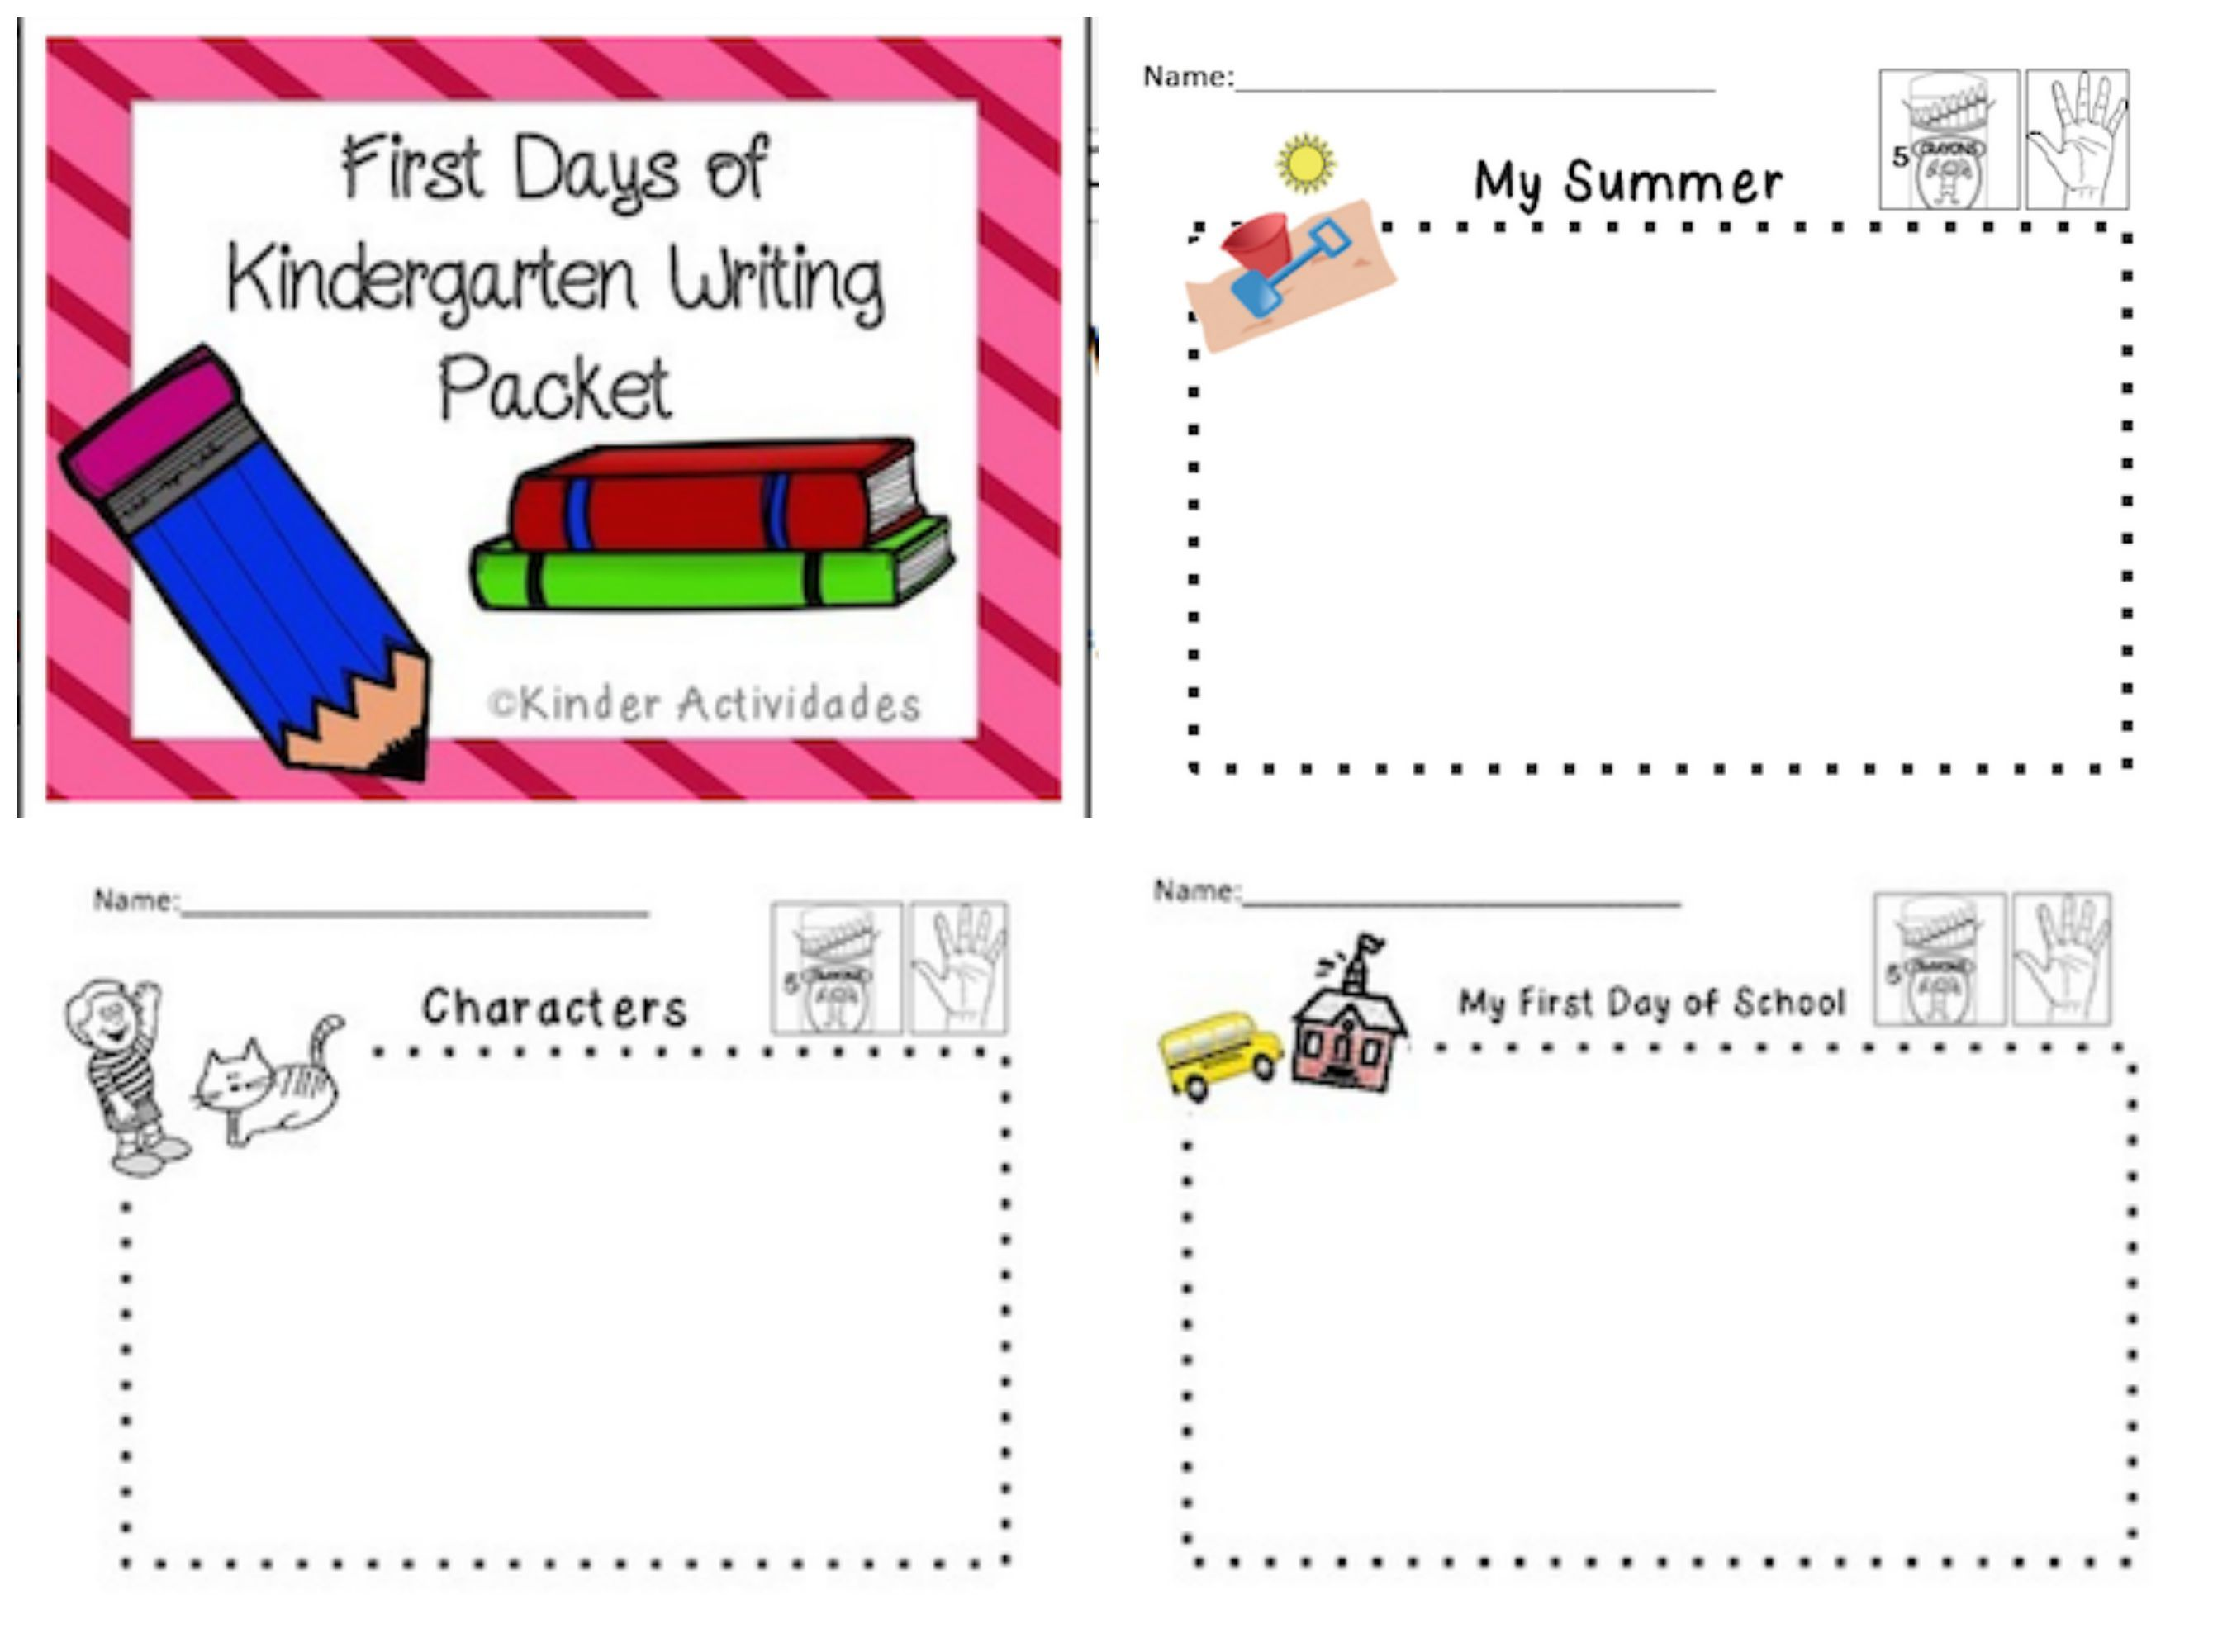 First Days Of Kindergarten Early Writing Packet